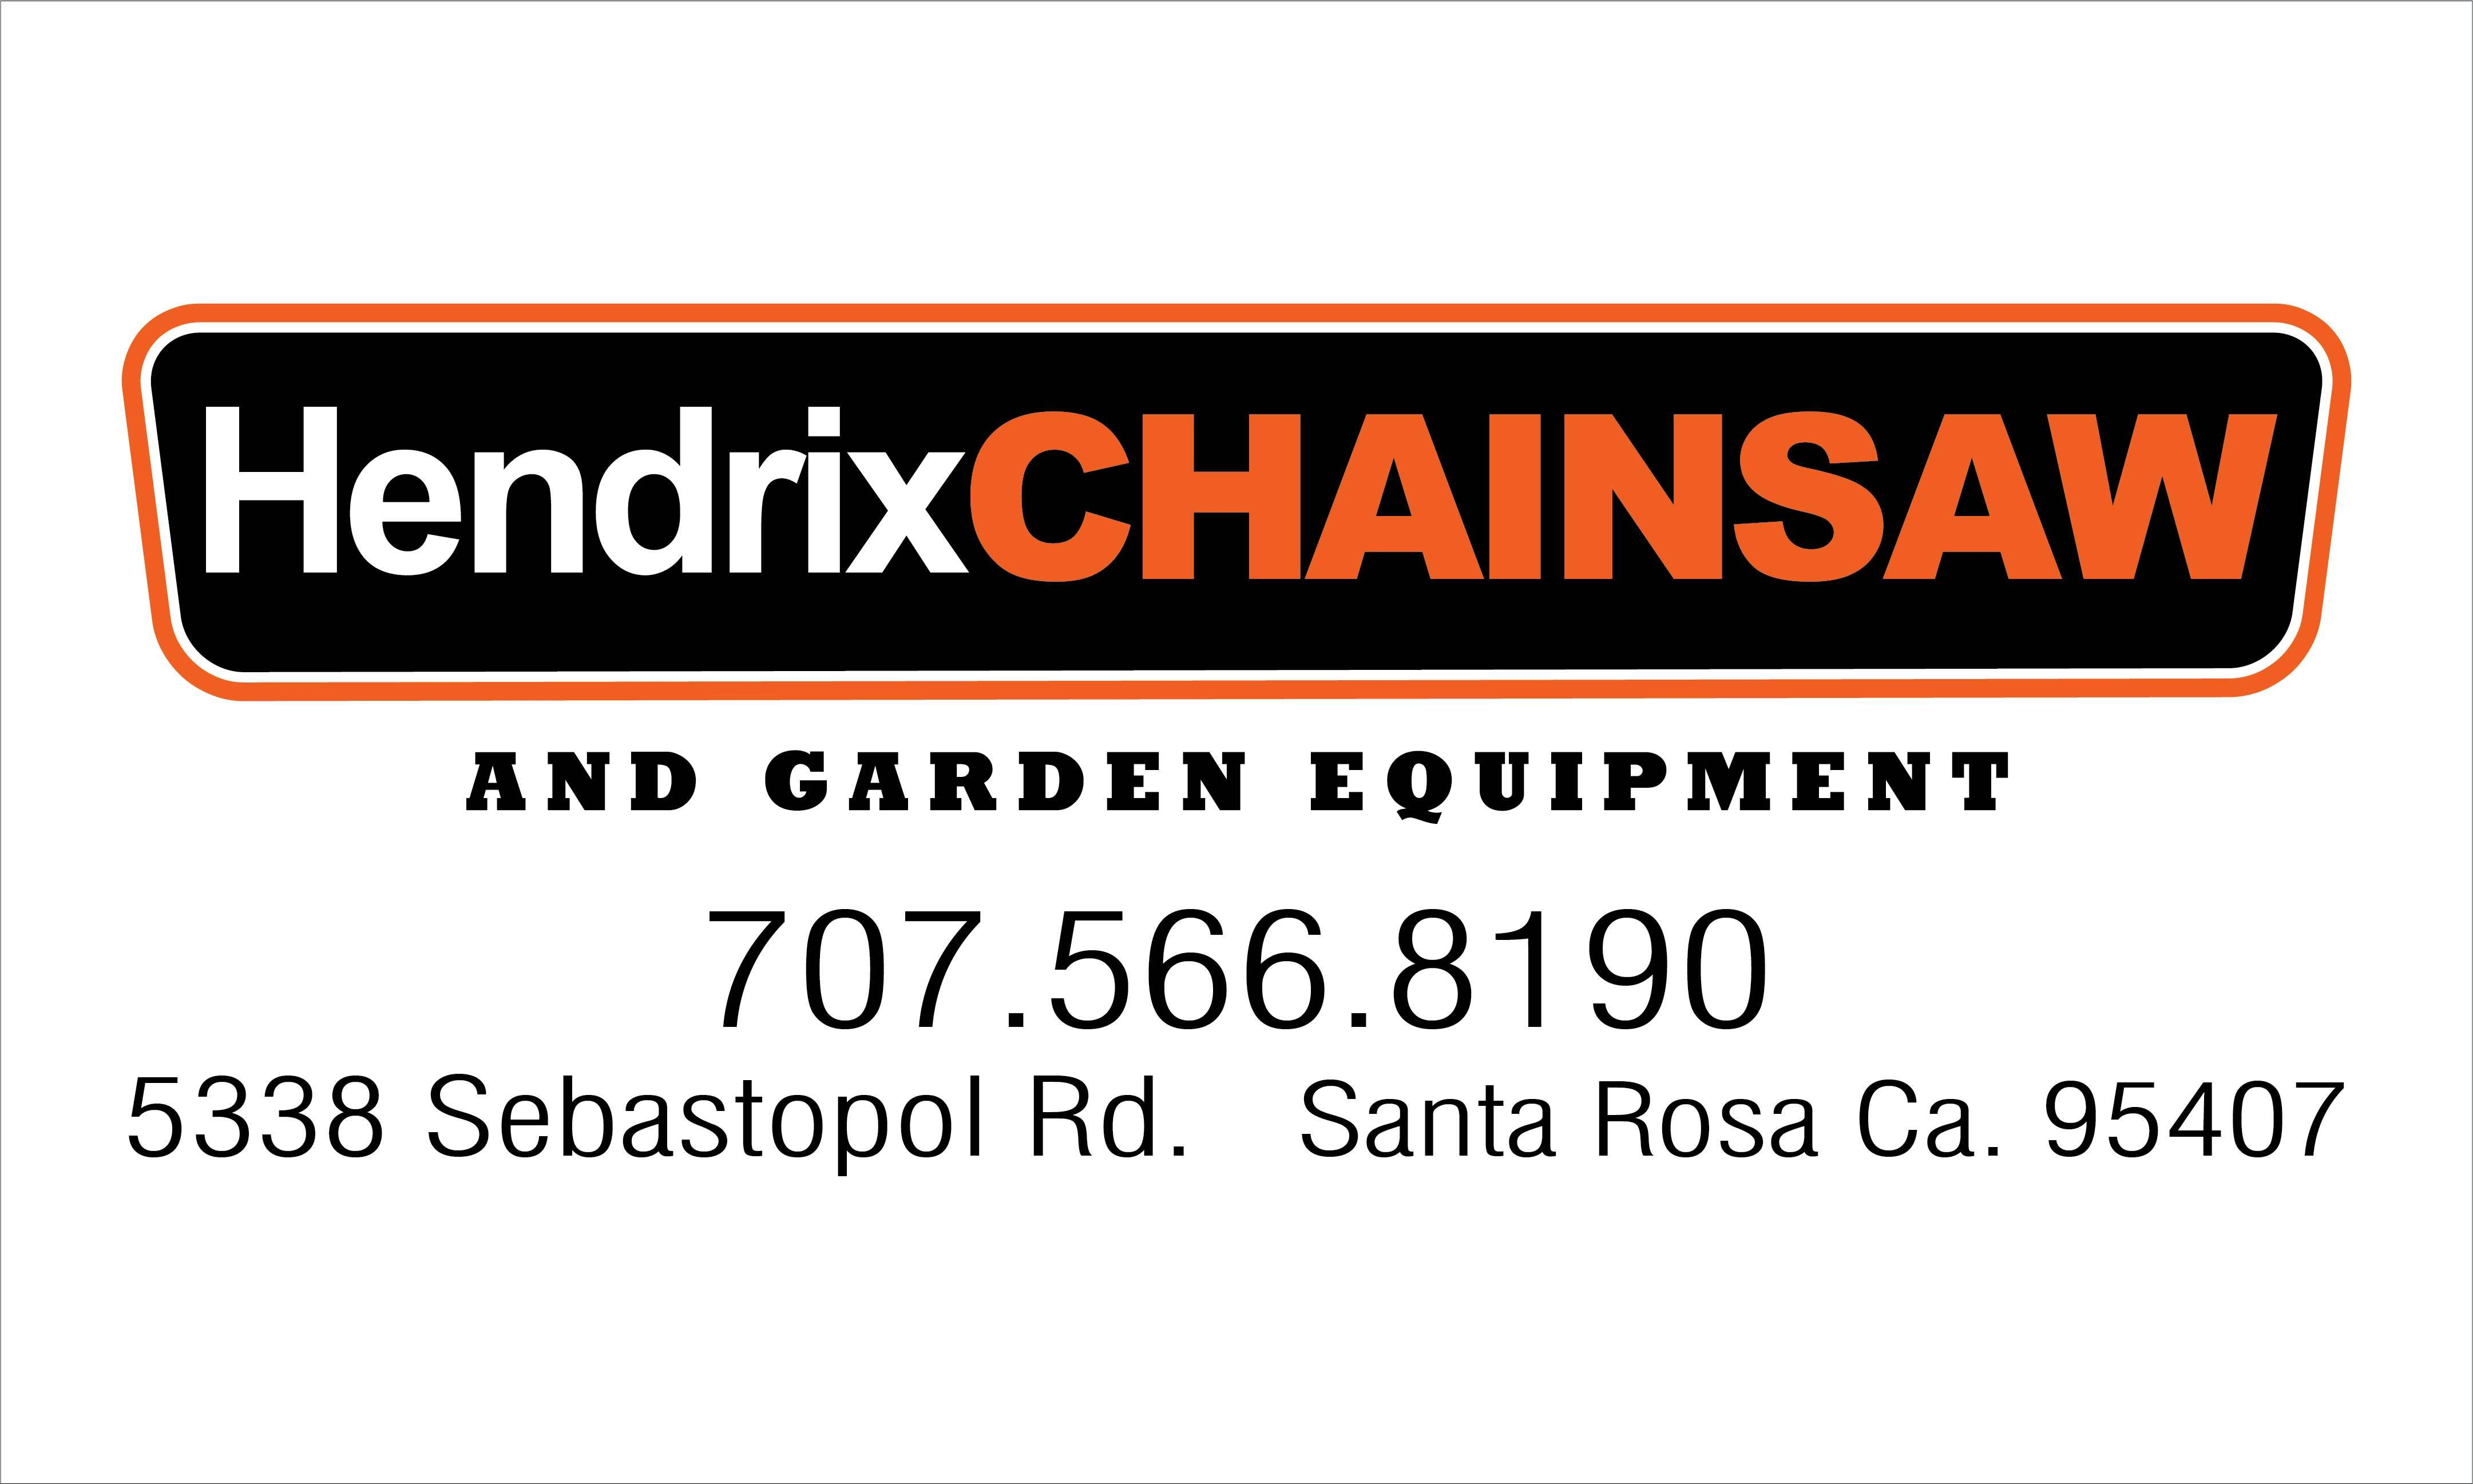 Hendrix Chainsaw